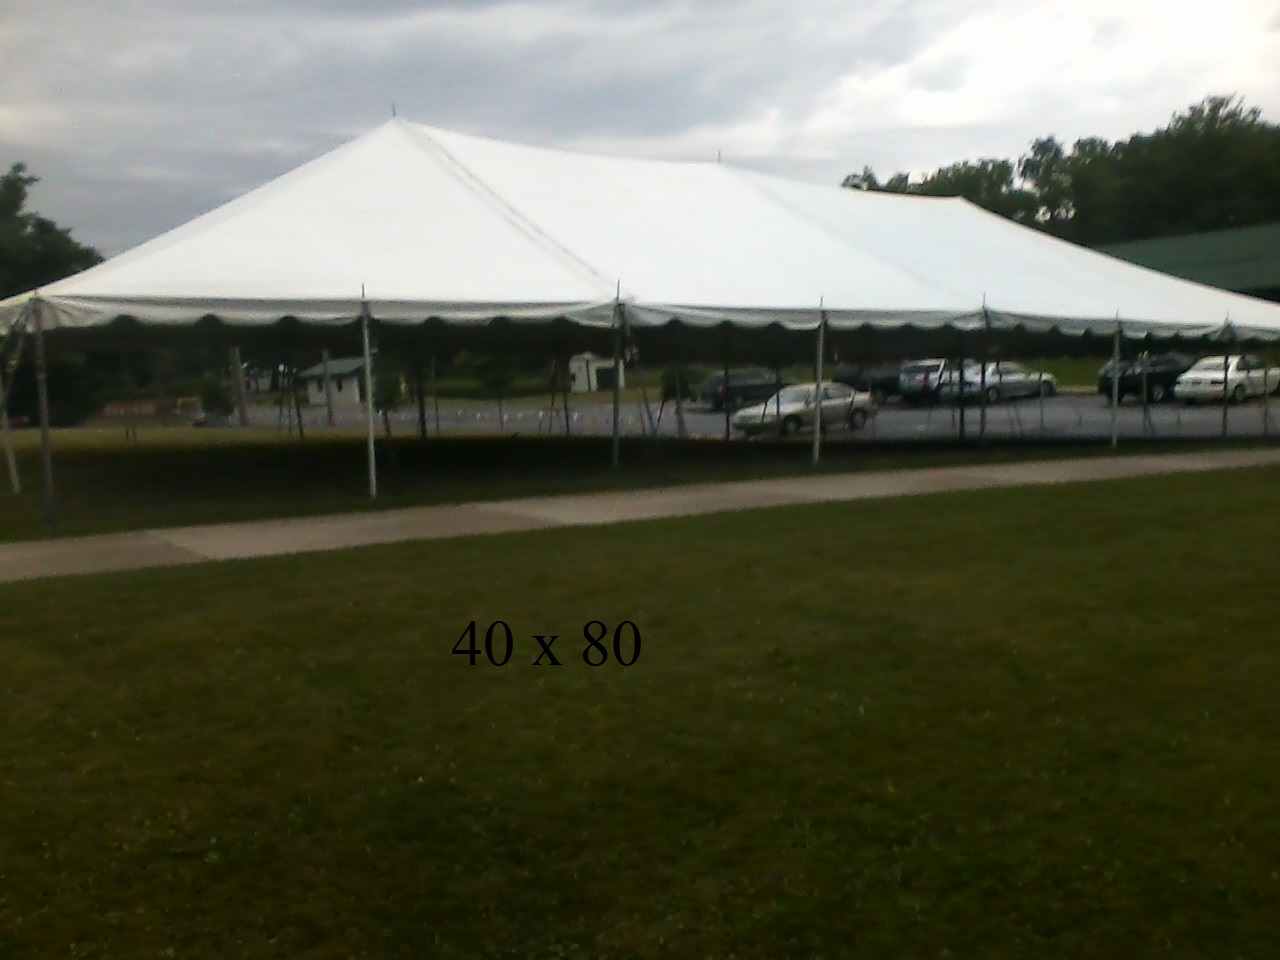 40 215 80 Tent Rental For Events Elkart County Indiana New